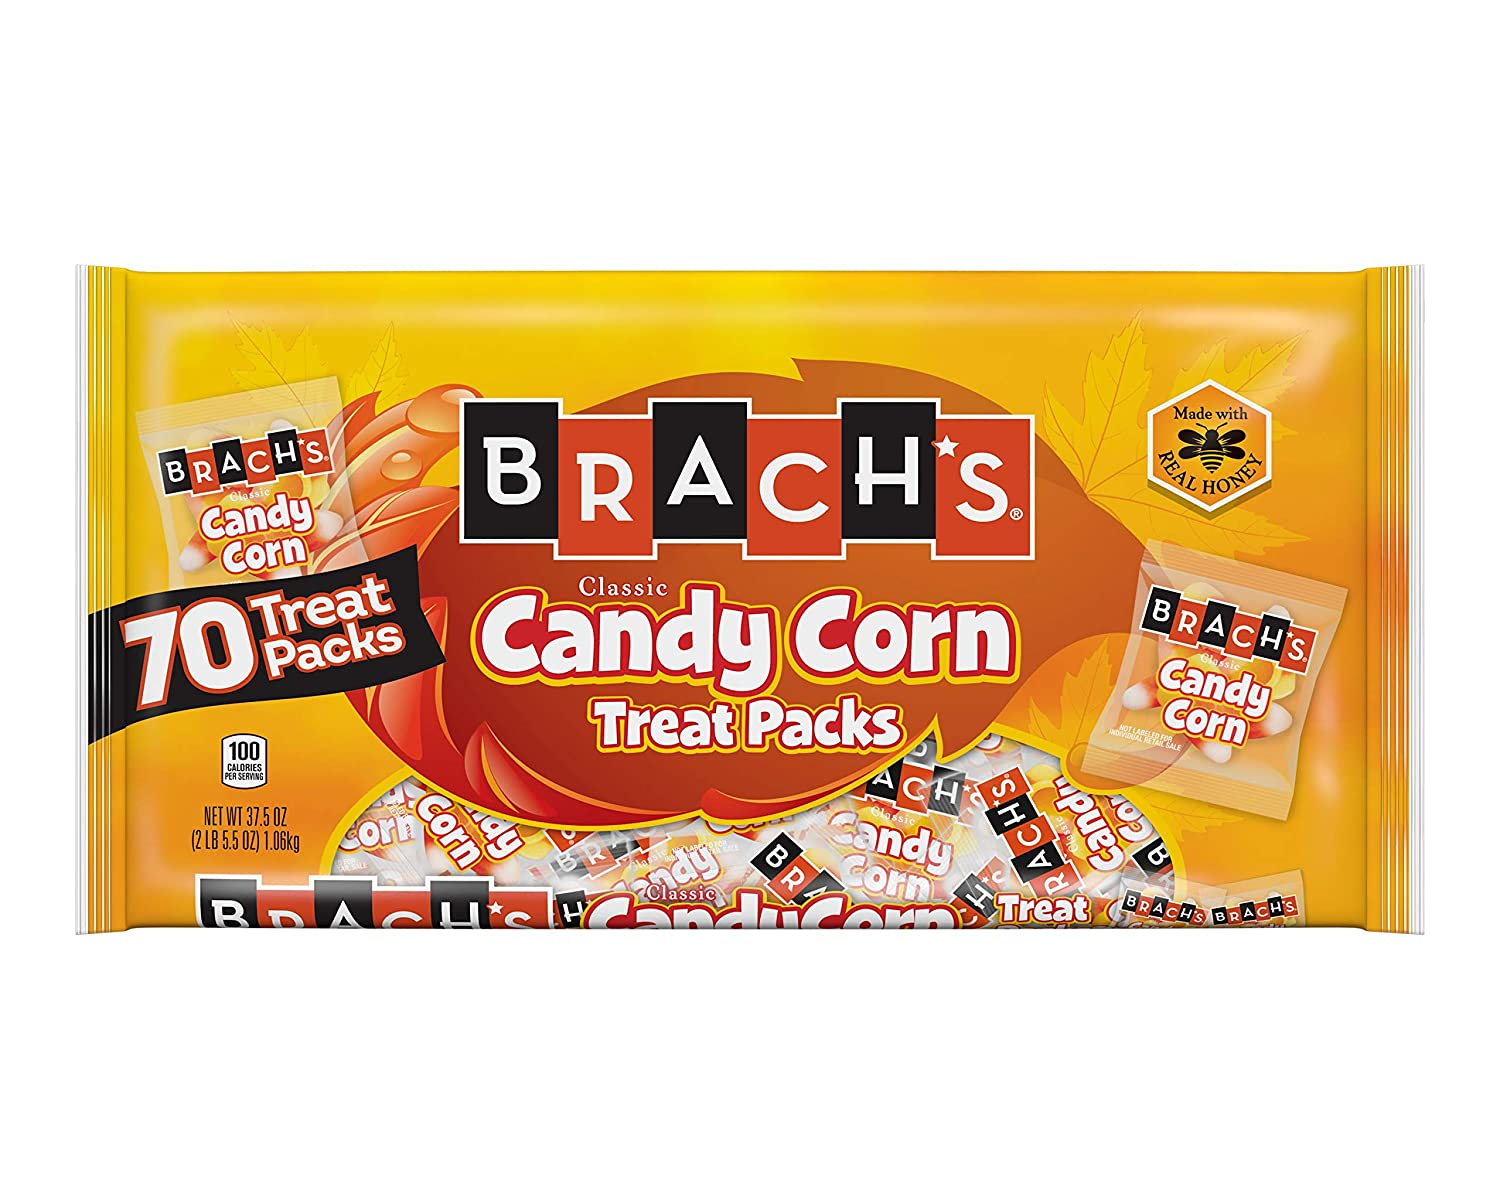 Brach's Candy Corn Treat Packs, 37.5 Ounce (Pack of 1),70 Count